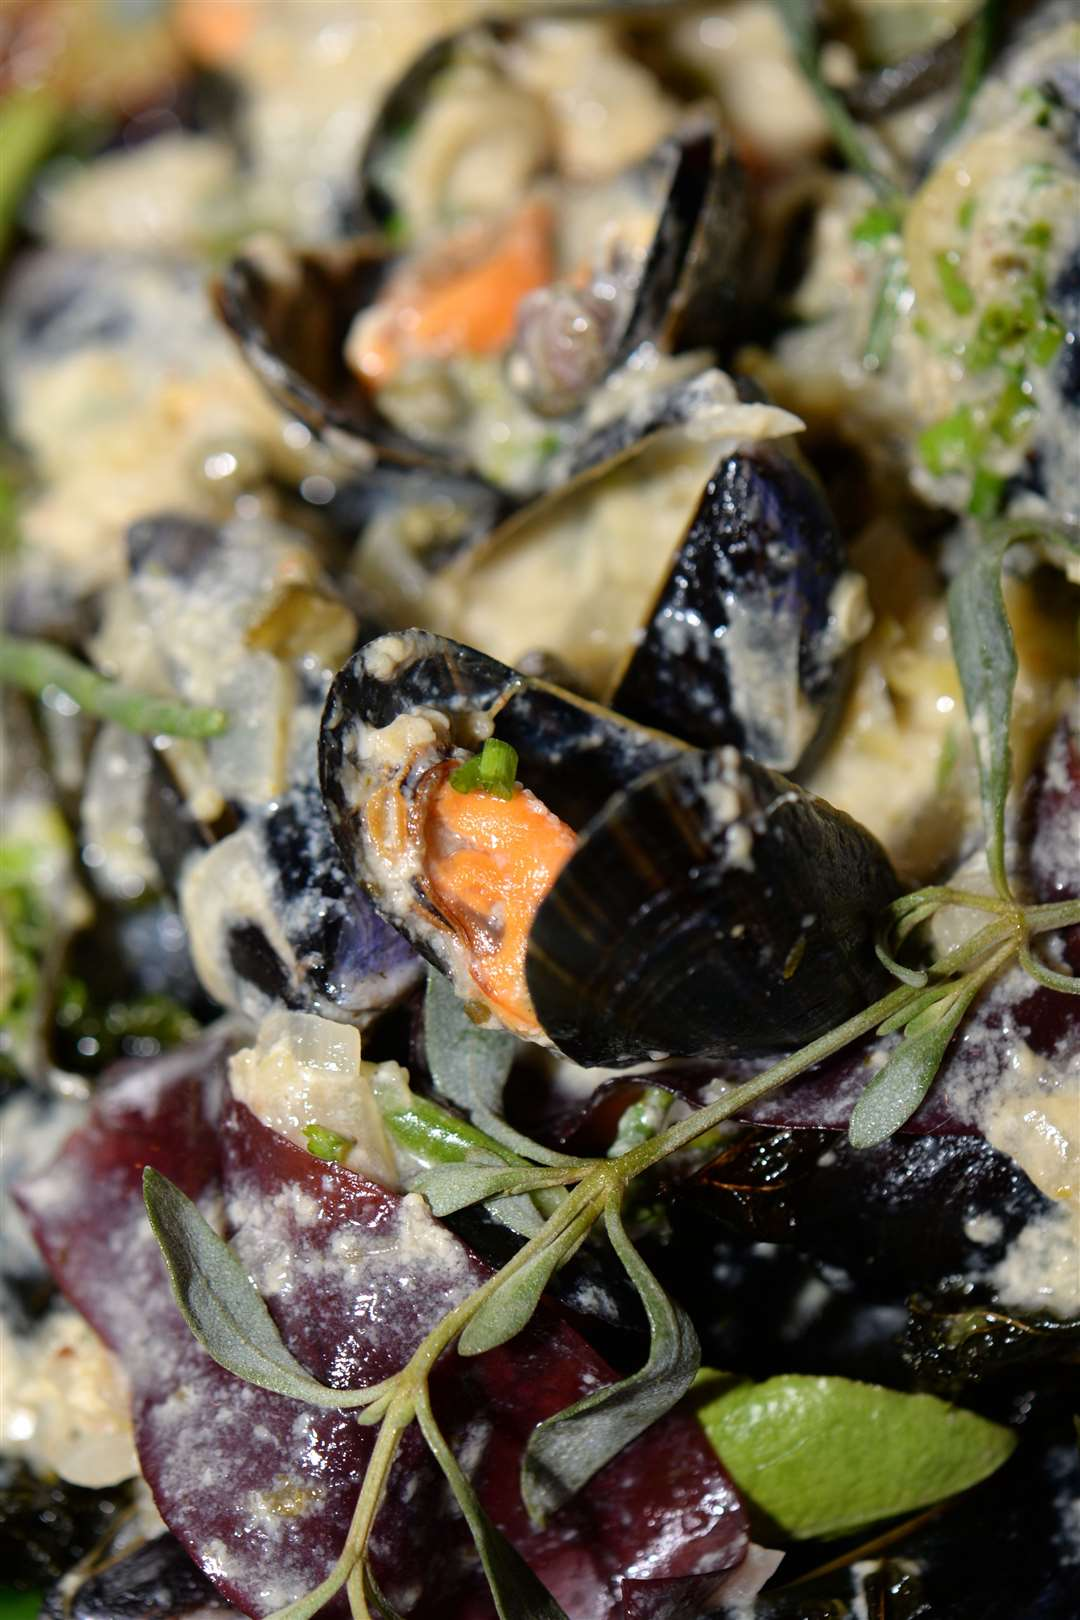 Saira's choice was native blueshell mussels in a Thai green and lemongrass curry sauce Pic: Vikki Lince (7656570)